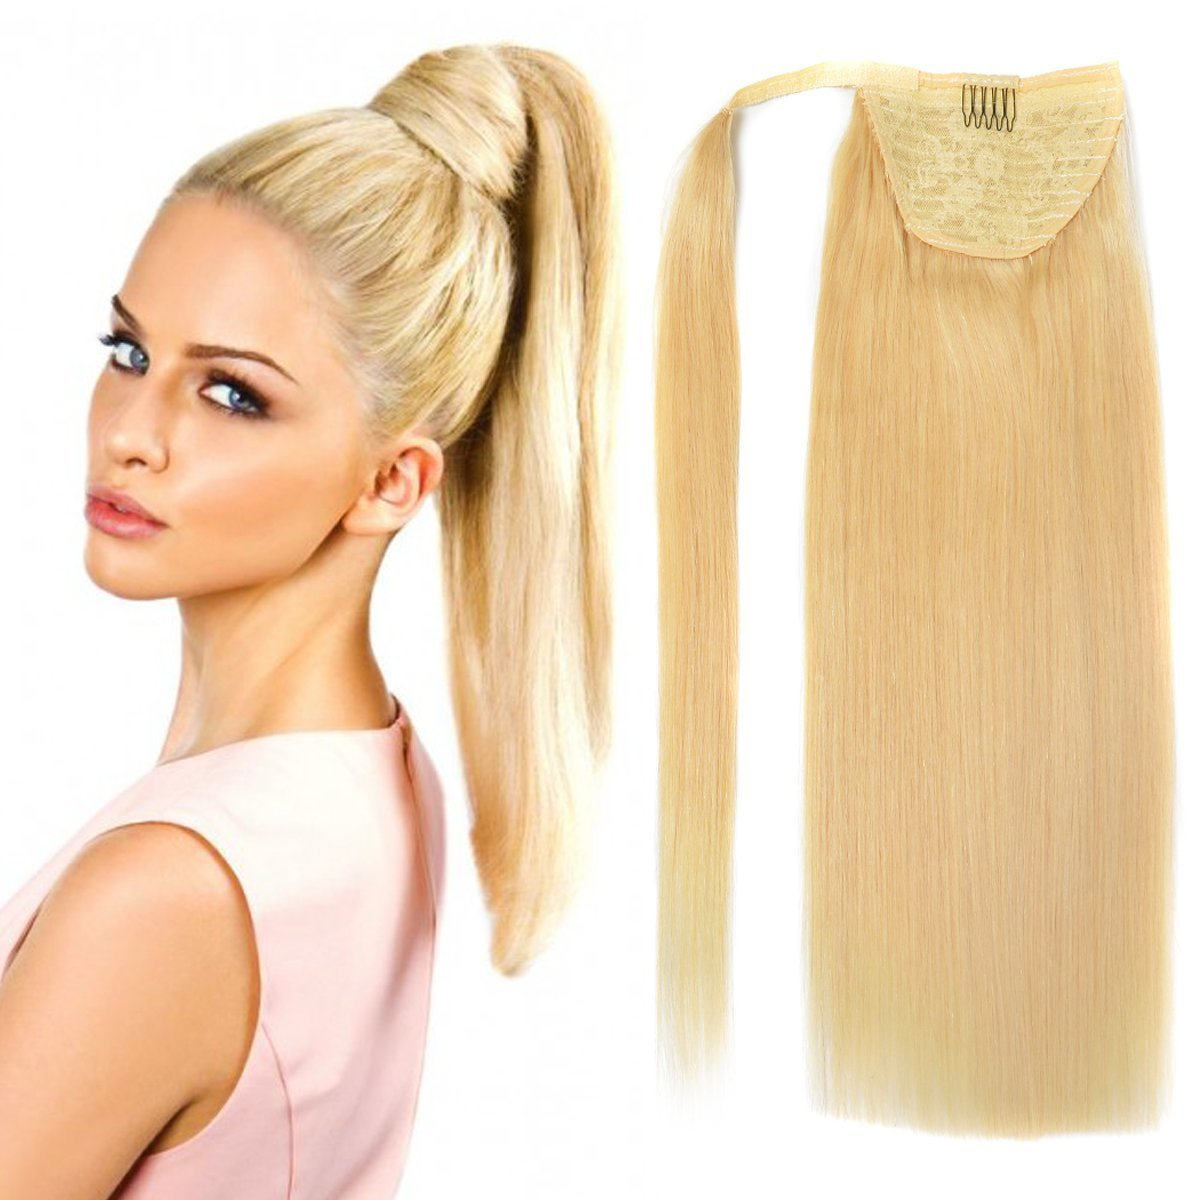 18 Straight Wrap Around Ponytail Human Hair Extensions For Women 100gram Bleach Blonde 613